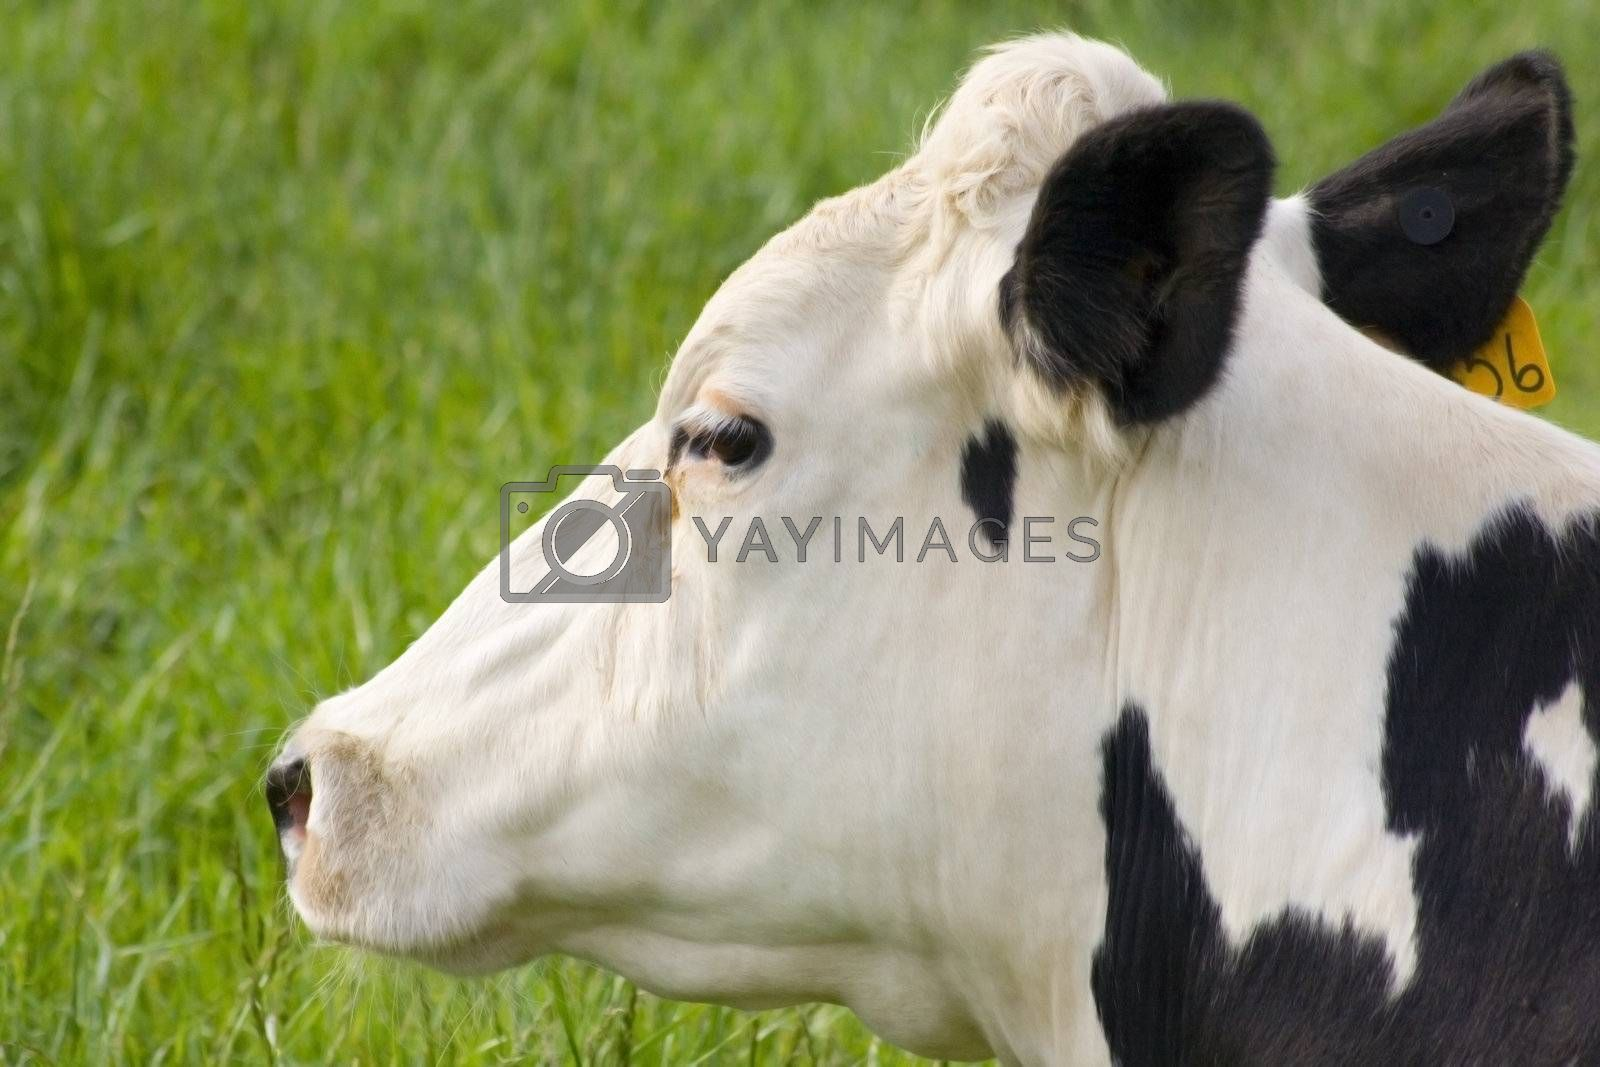 A profile view of a cow laying in the grass.